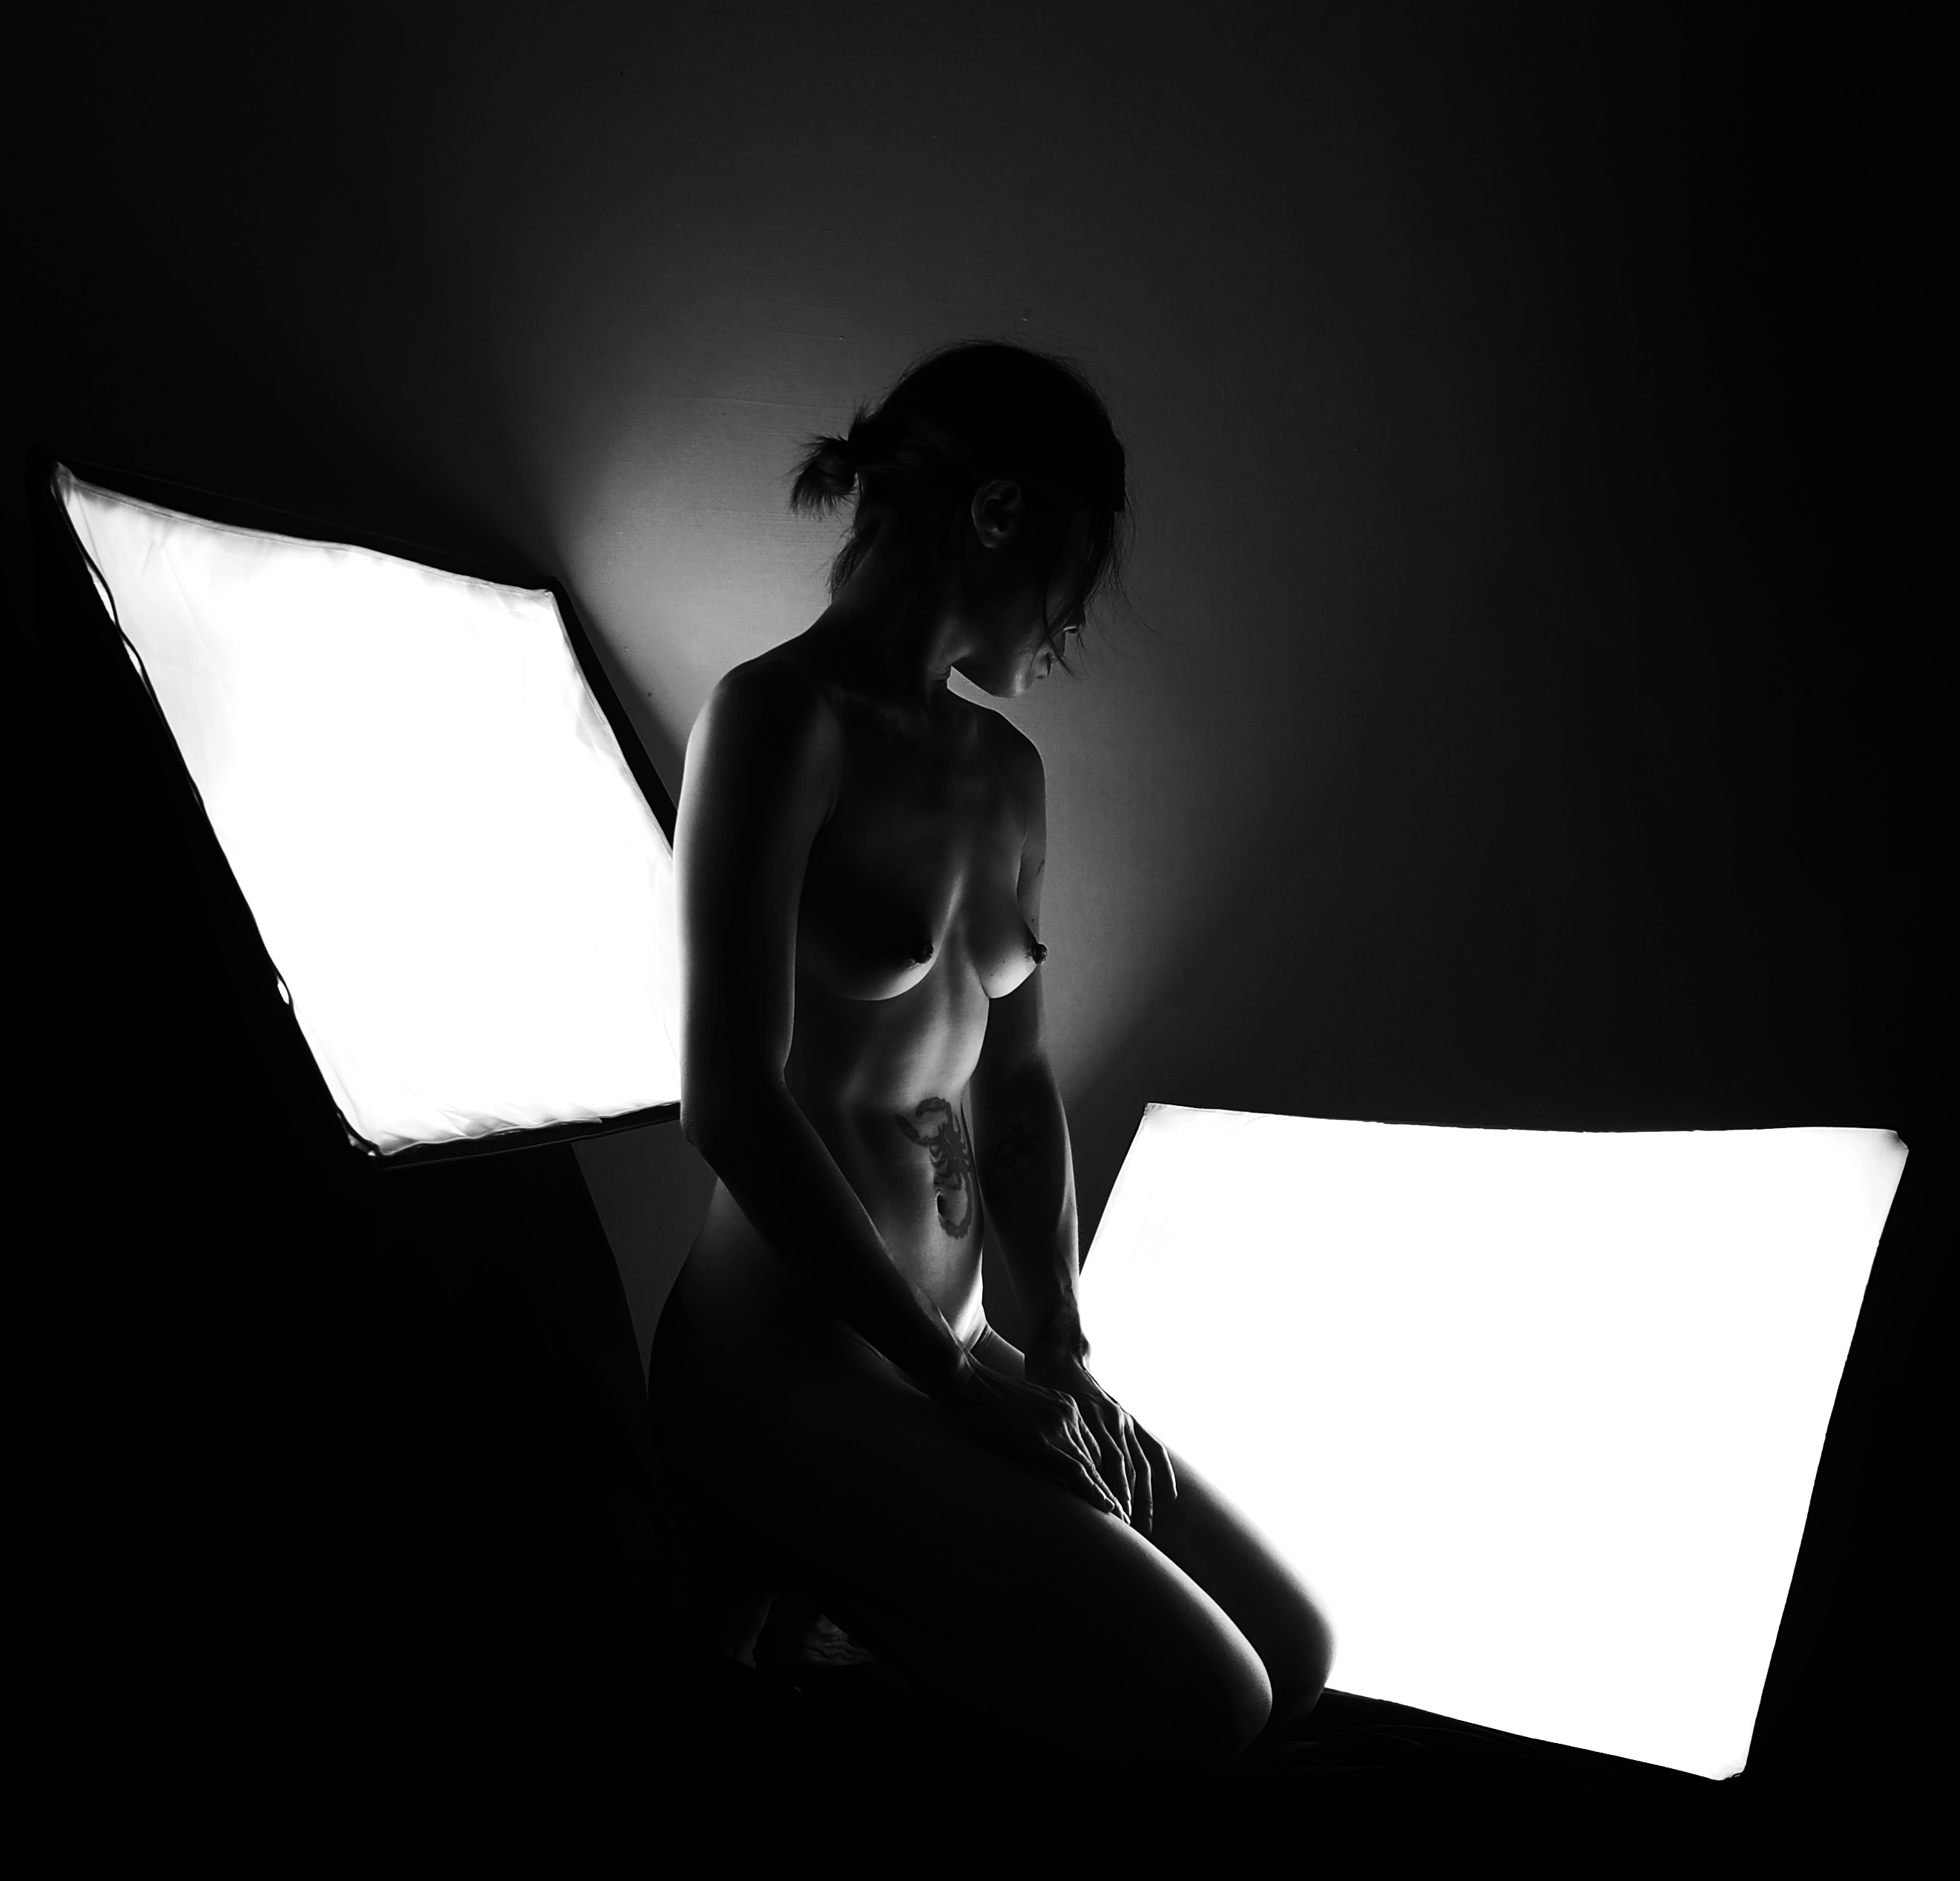 Pictured in dream by Suelynee ho, Taiwan artist Photographer